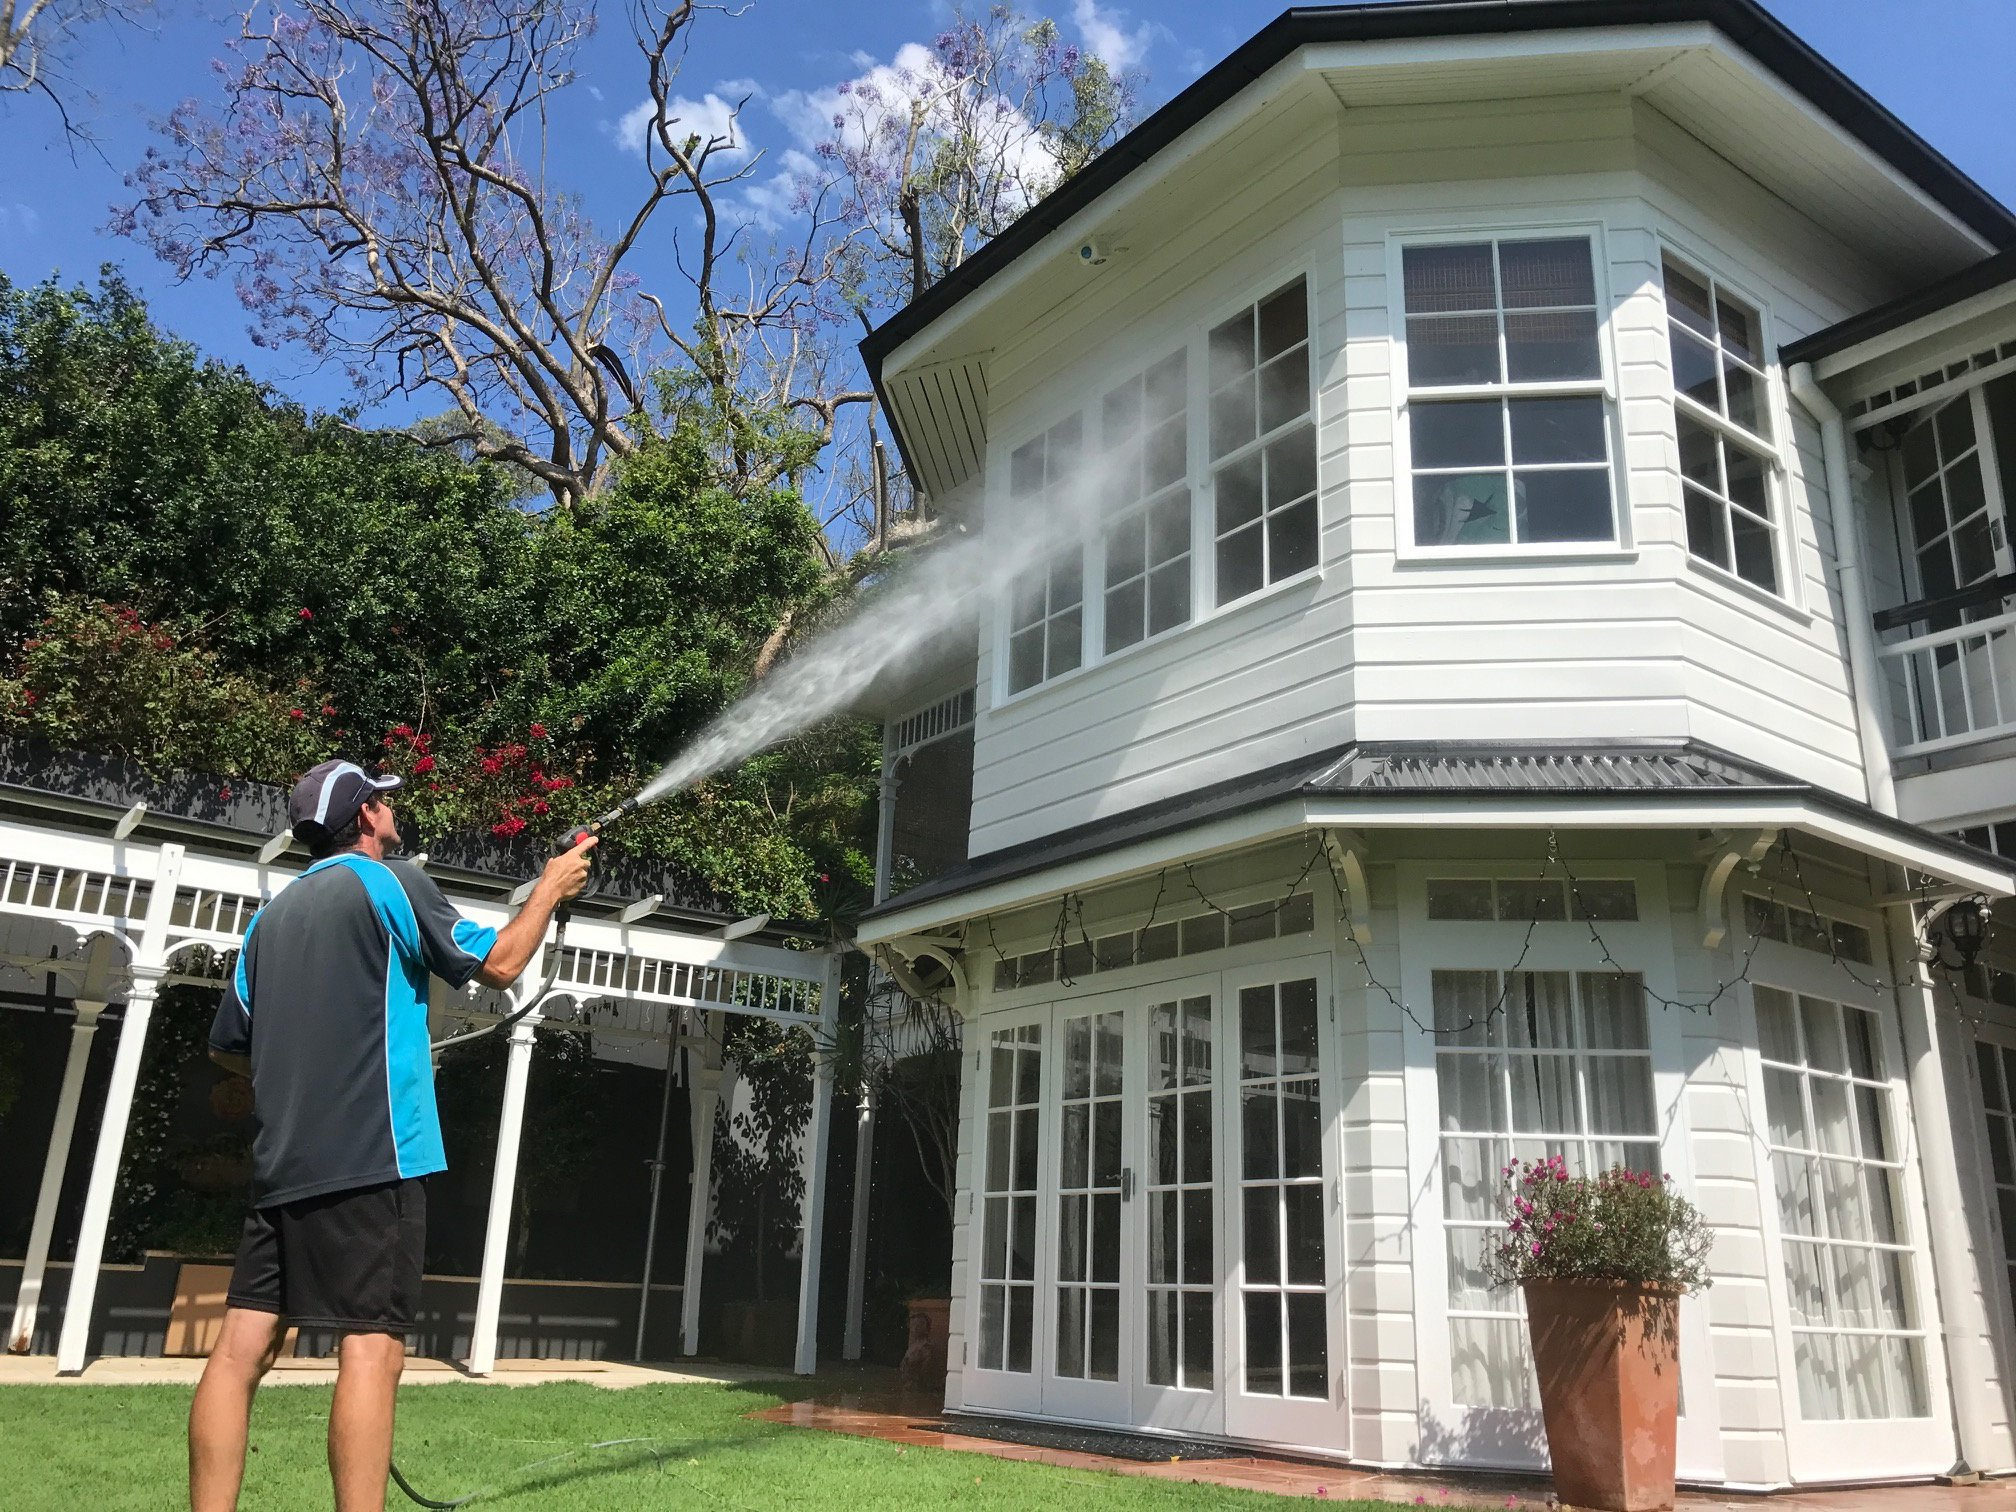 Chermside Roof washing services